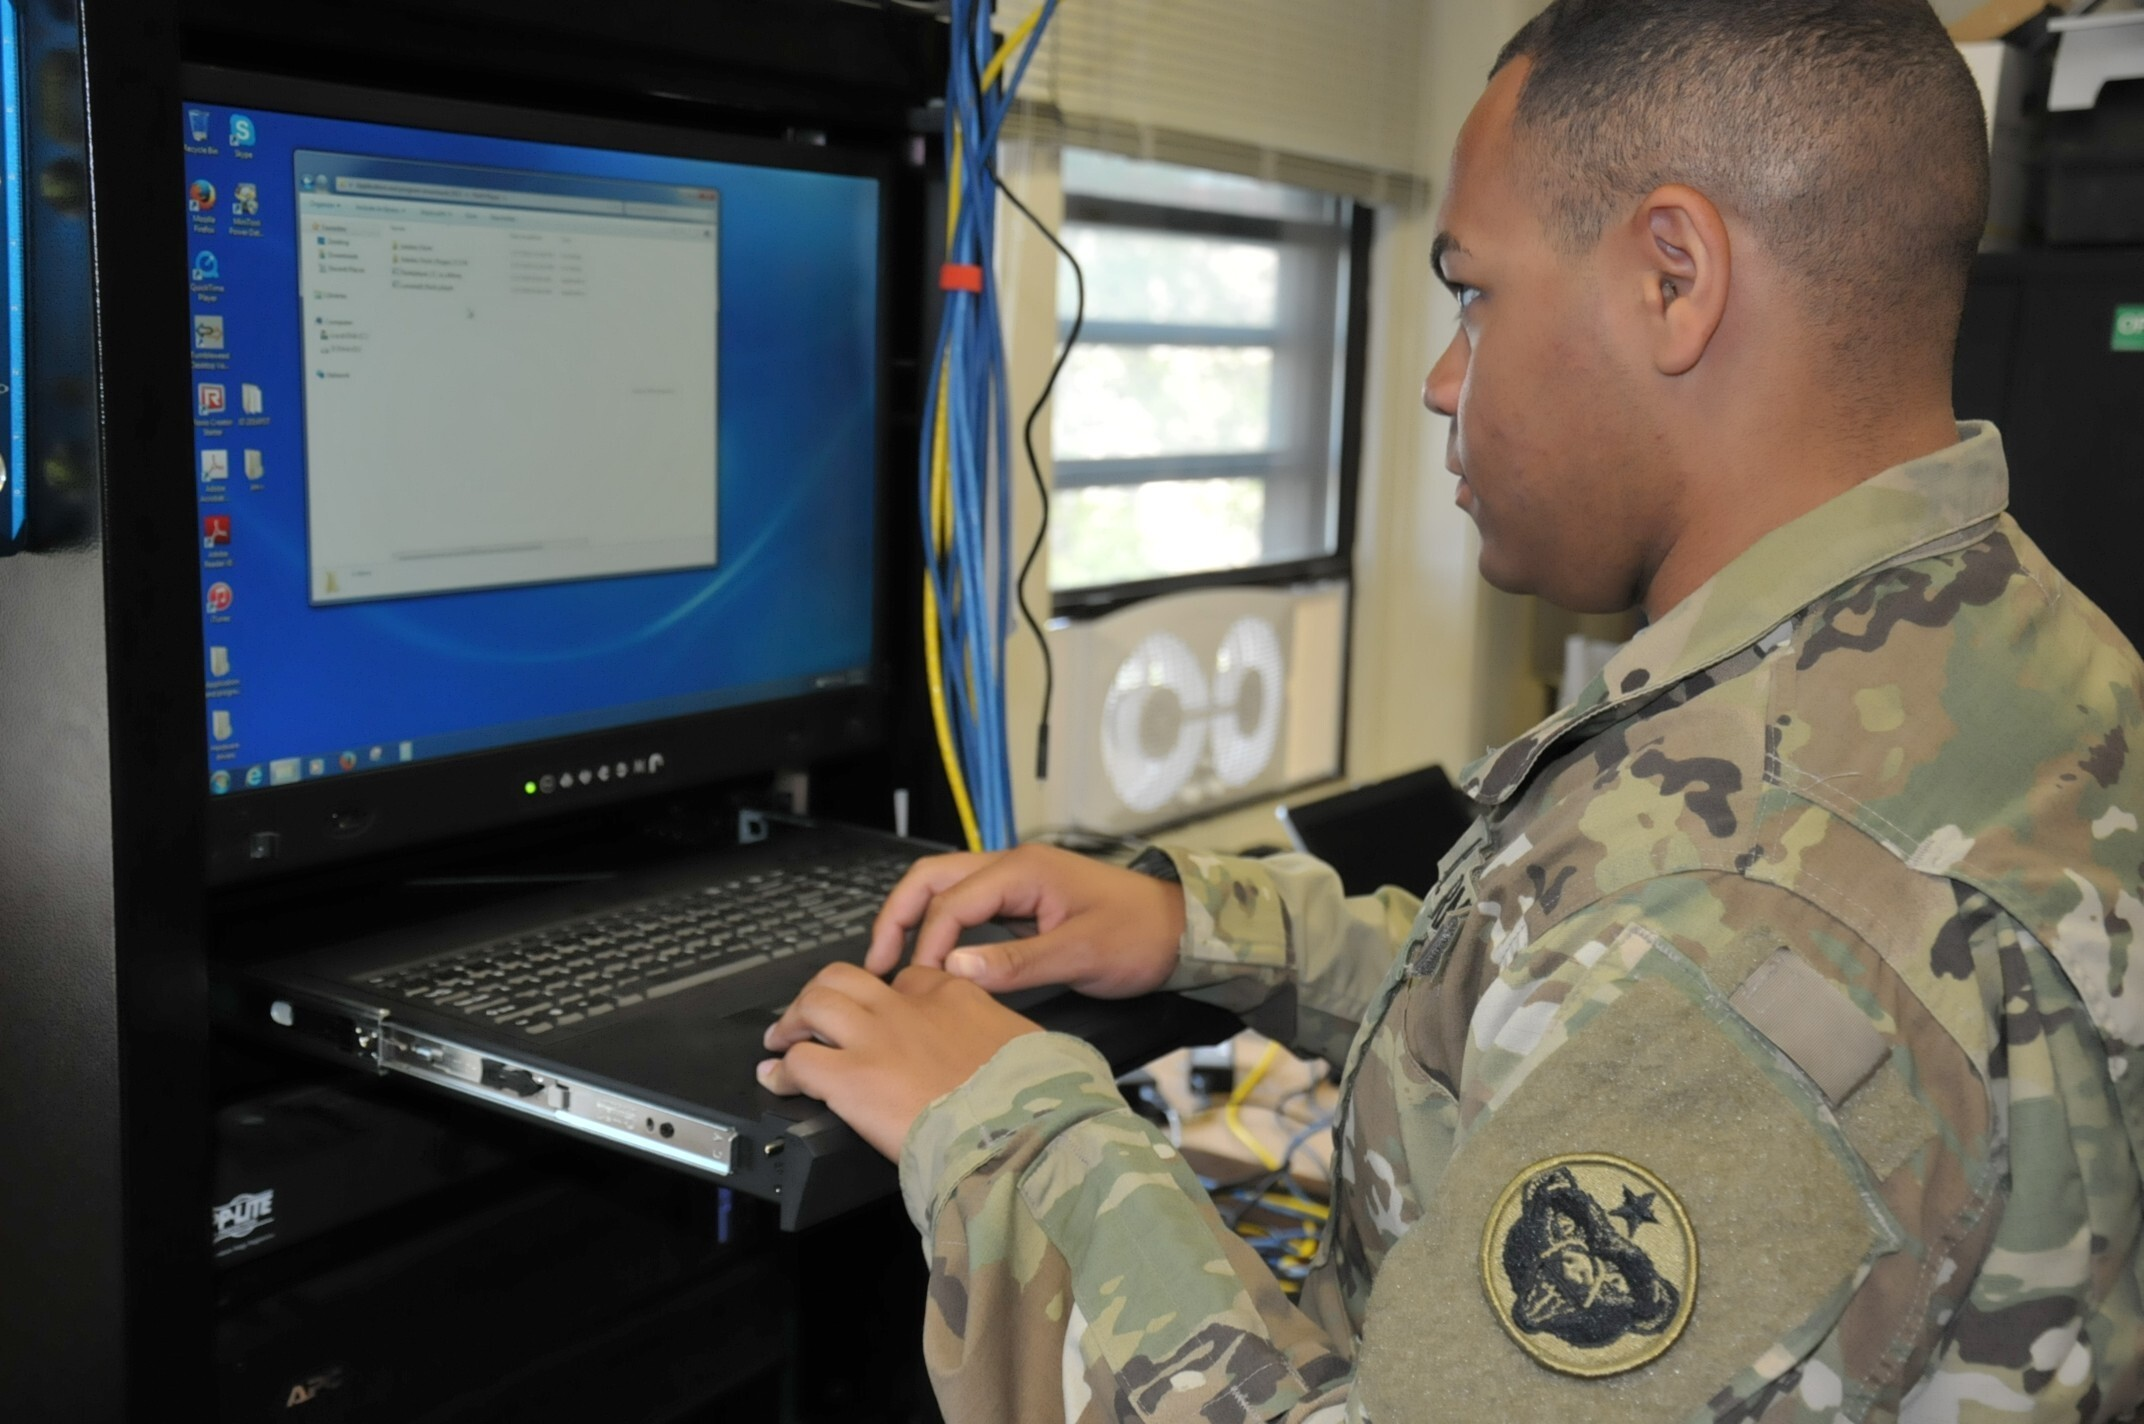 Army Cybersecurity Resources